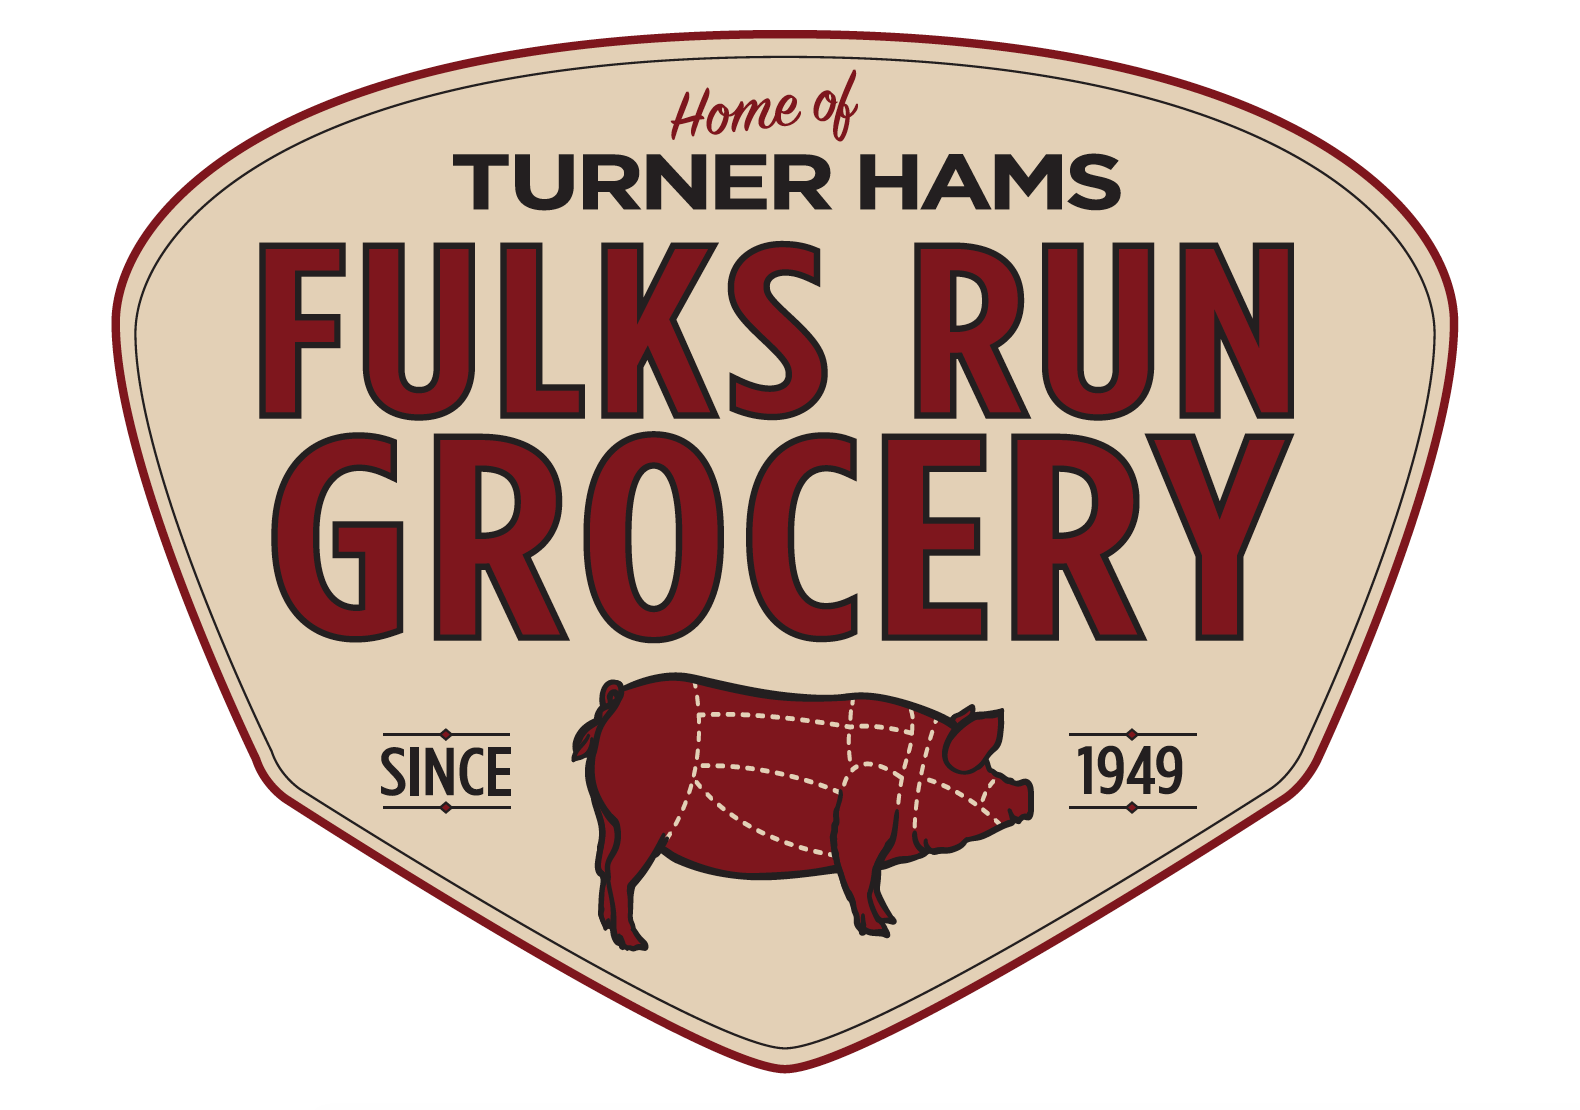 Fulks Run Grocery